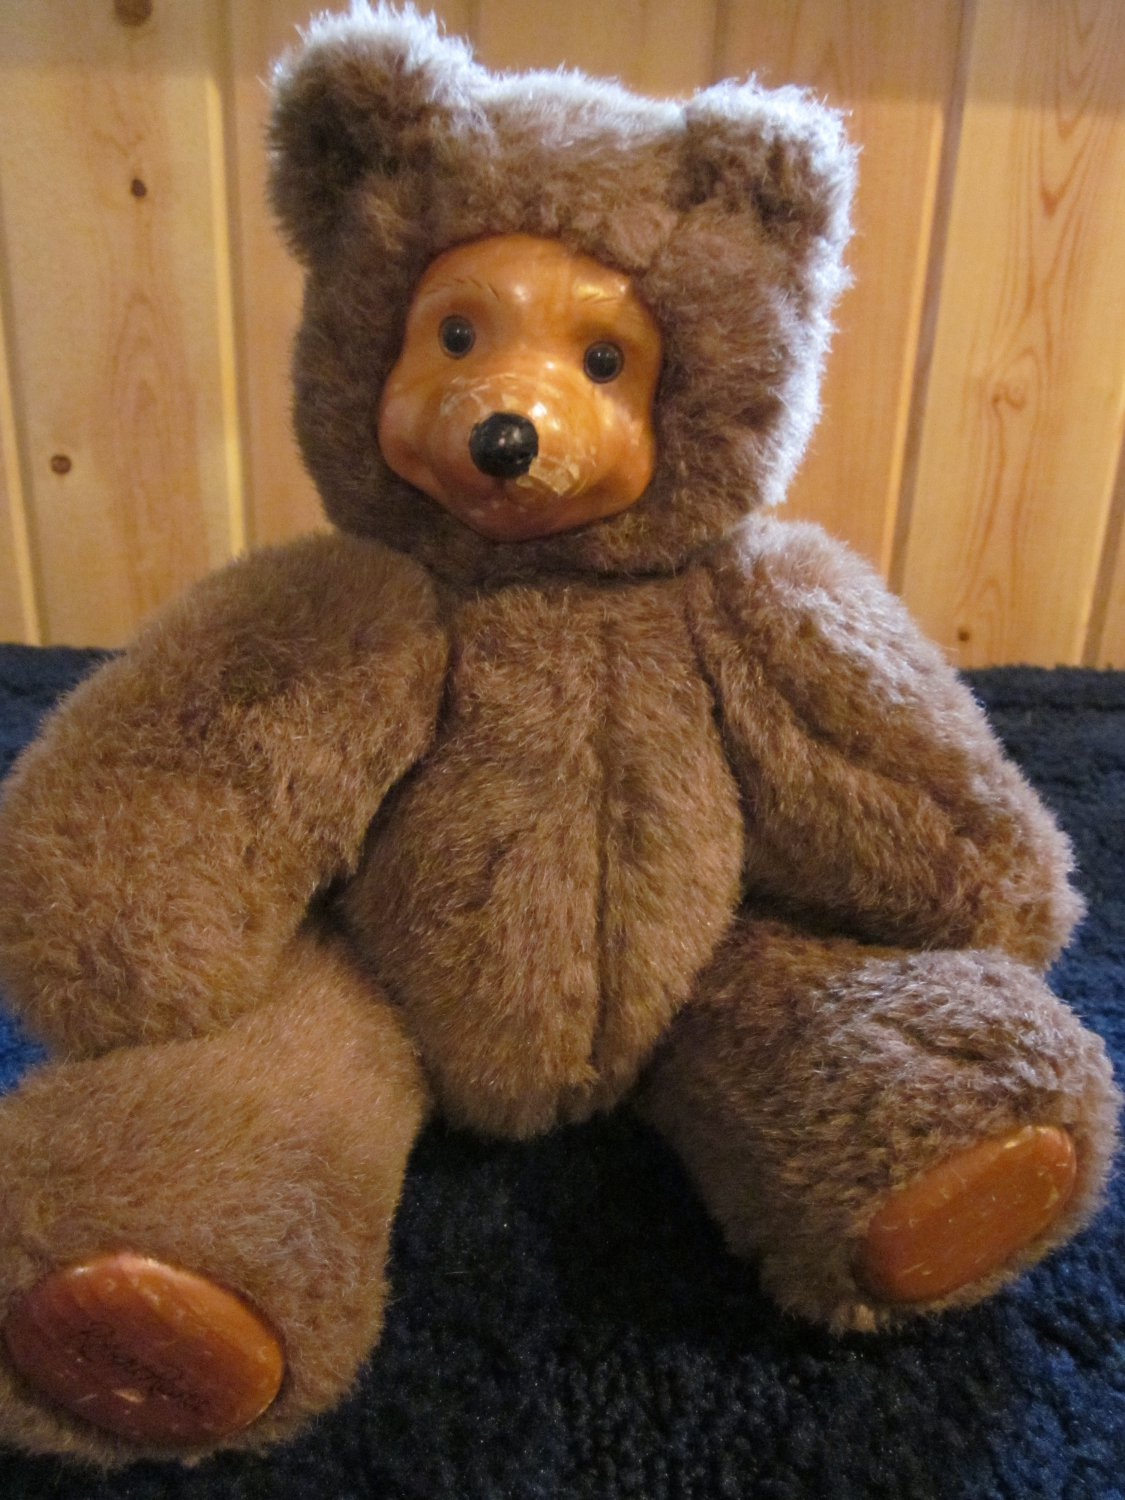 Applause 1988 Robert Raikes Wood Face Plush Brown Bear